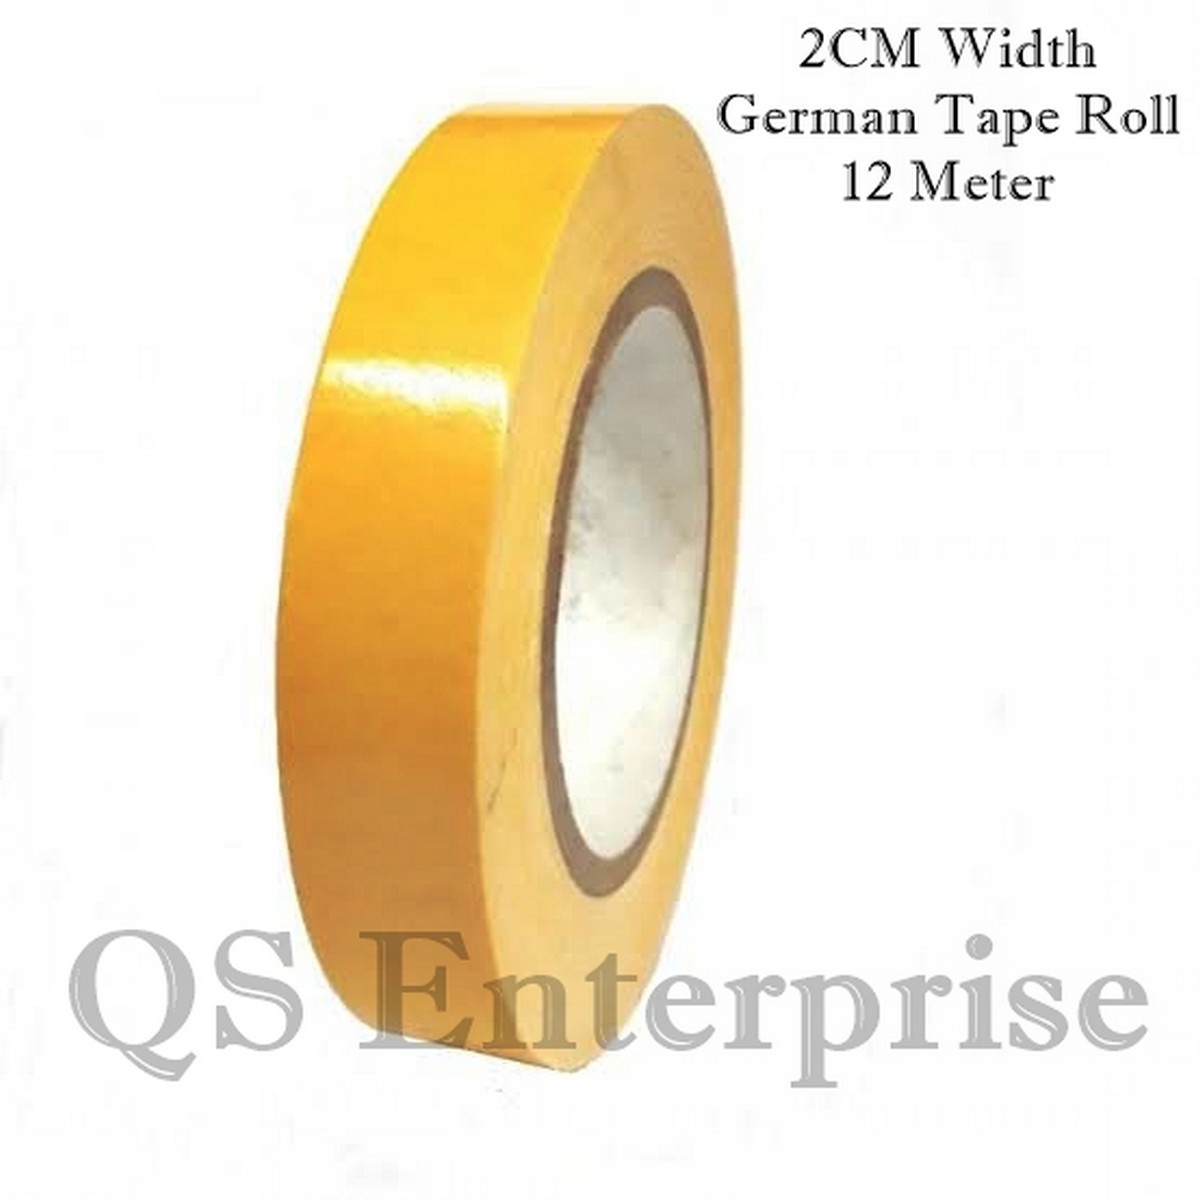 Wig Unit Tape Mesh Design Strongly Hold on Dry Skin (Double-sided Adhesive) - German 20 Meter